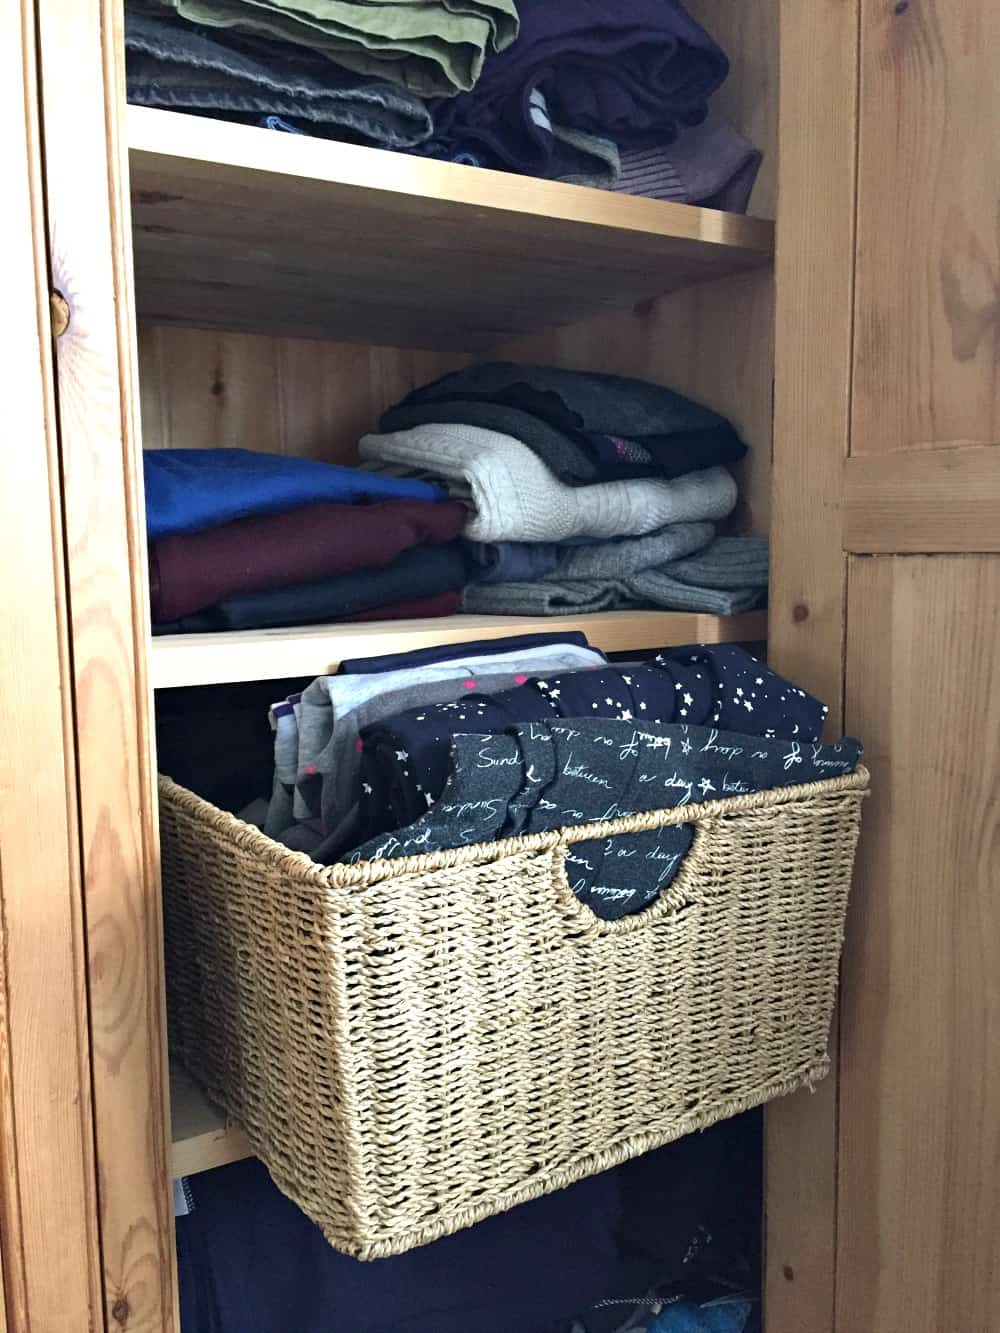 Baskets used as storage in a free standing wardrobe